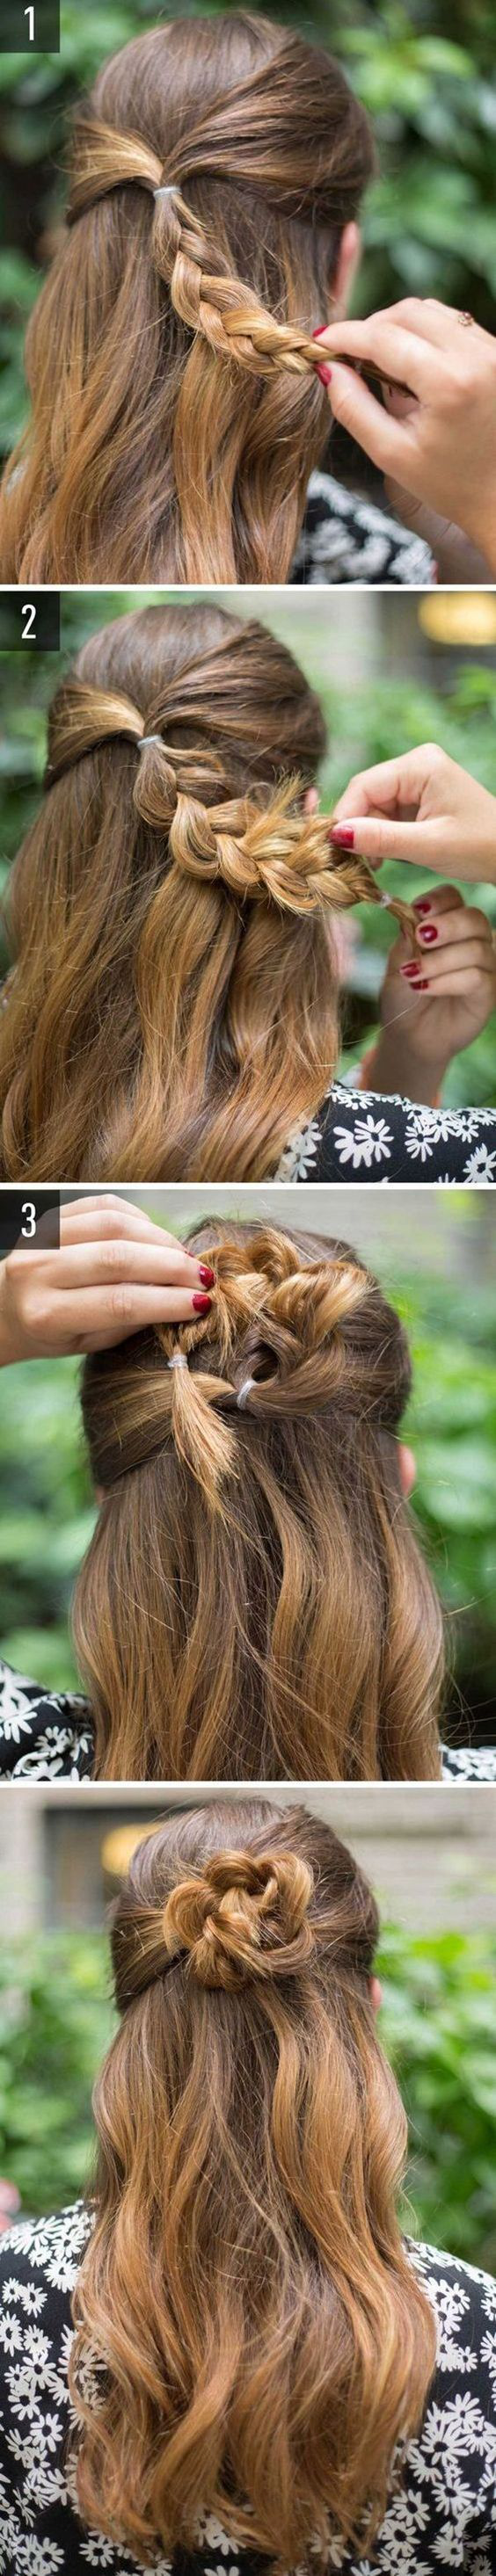 easy hairstyles for schools to try in for my teen daughter